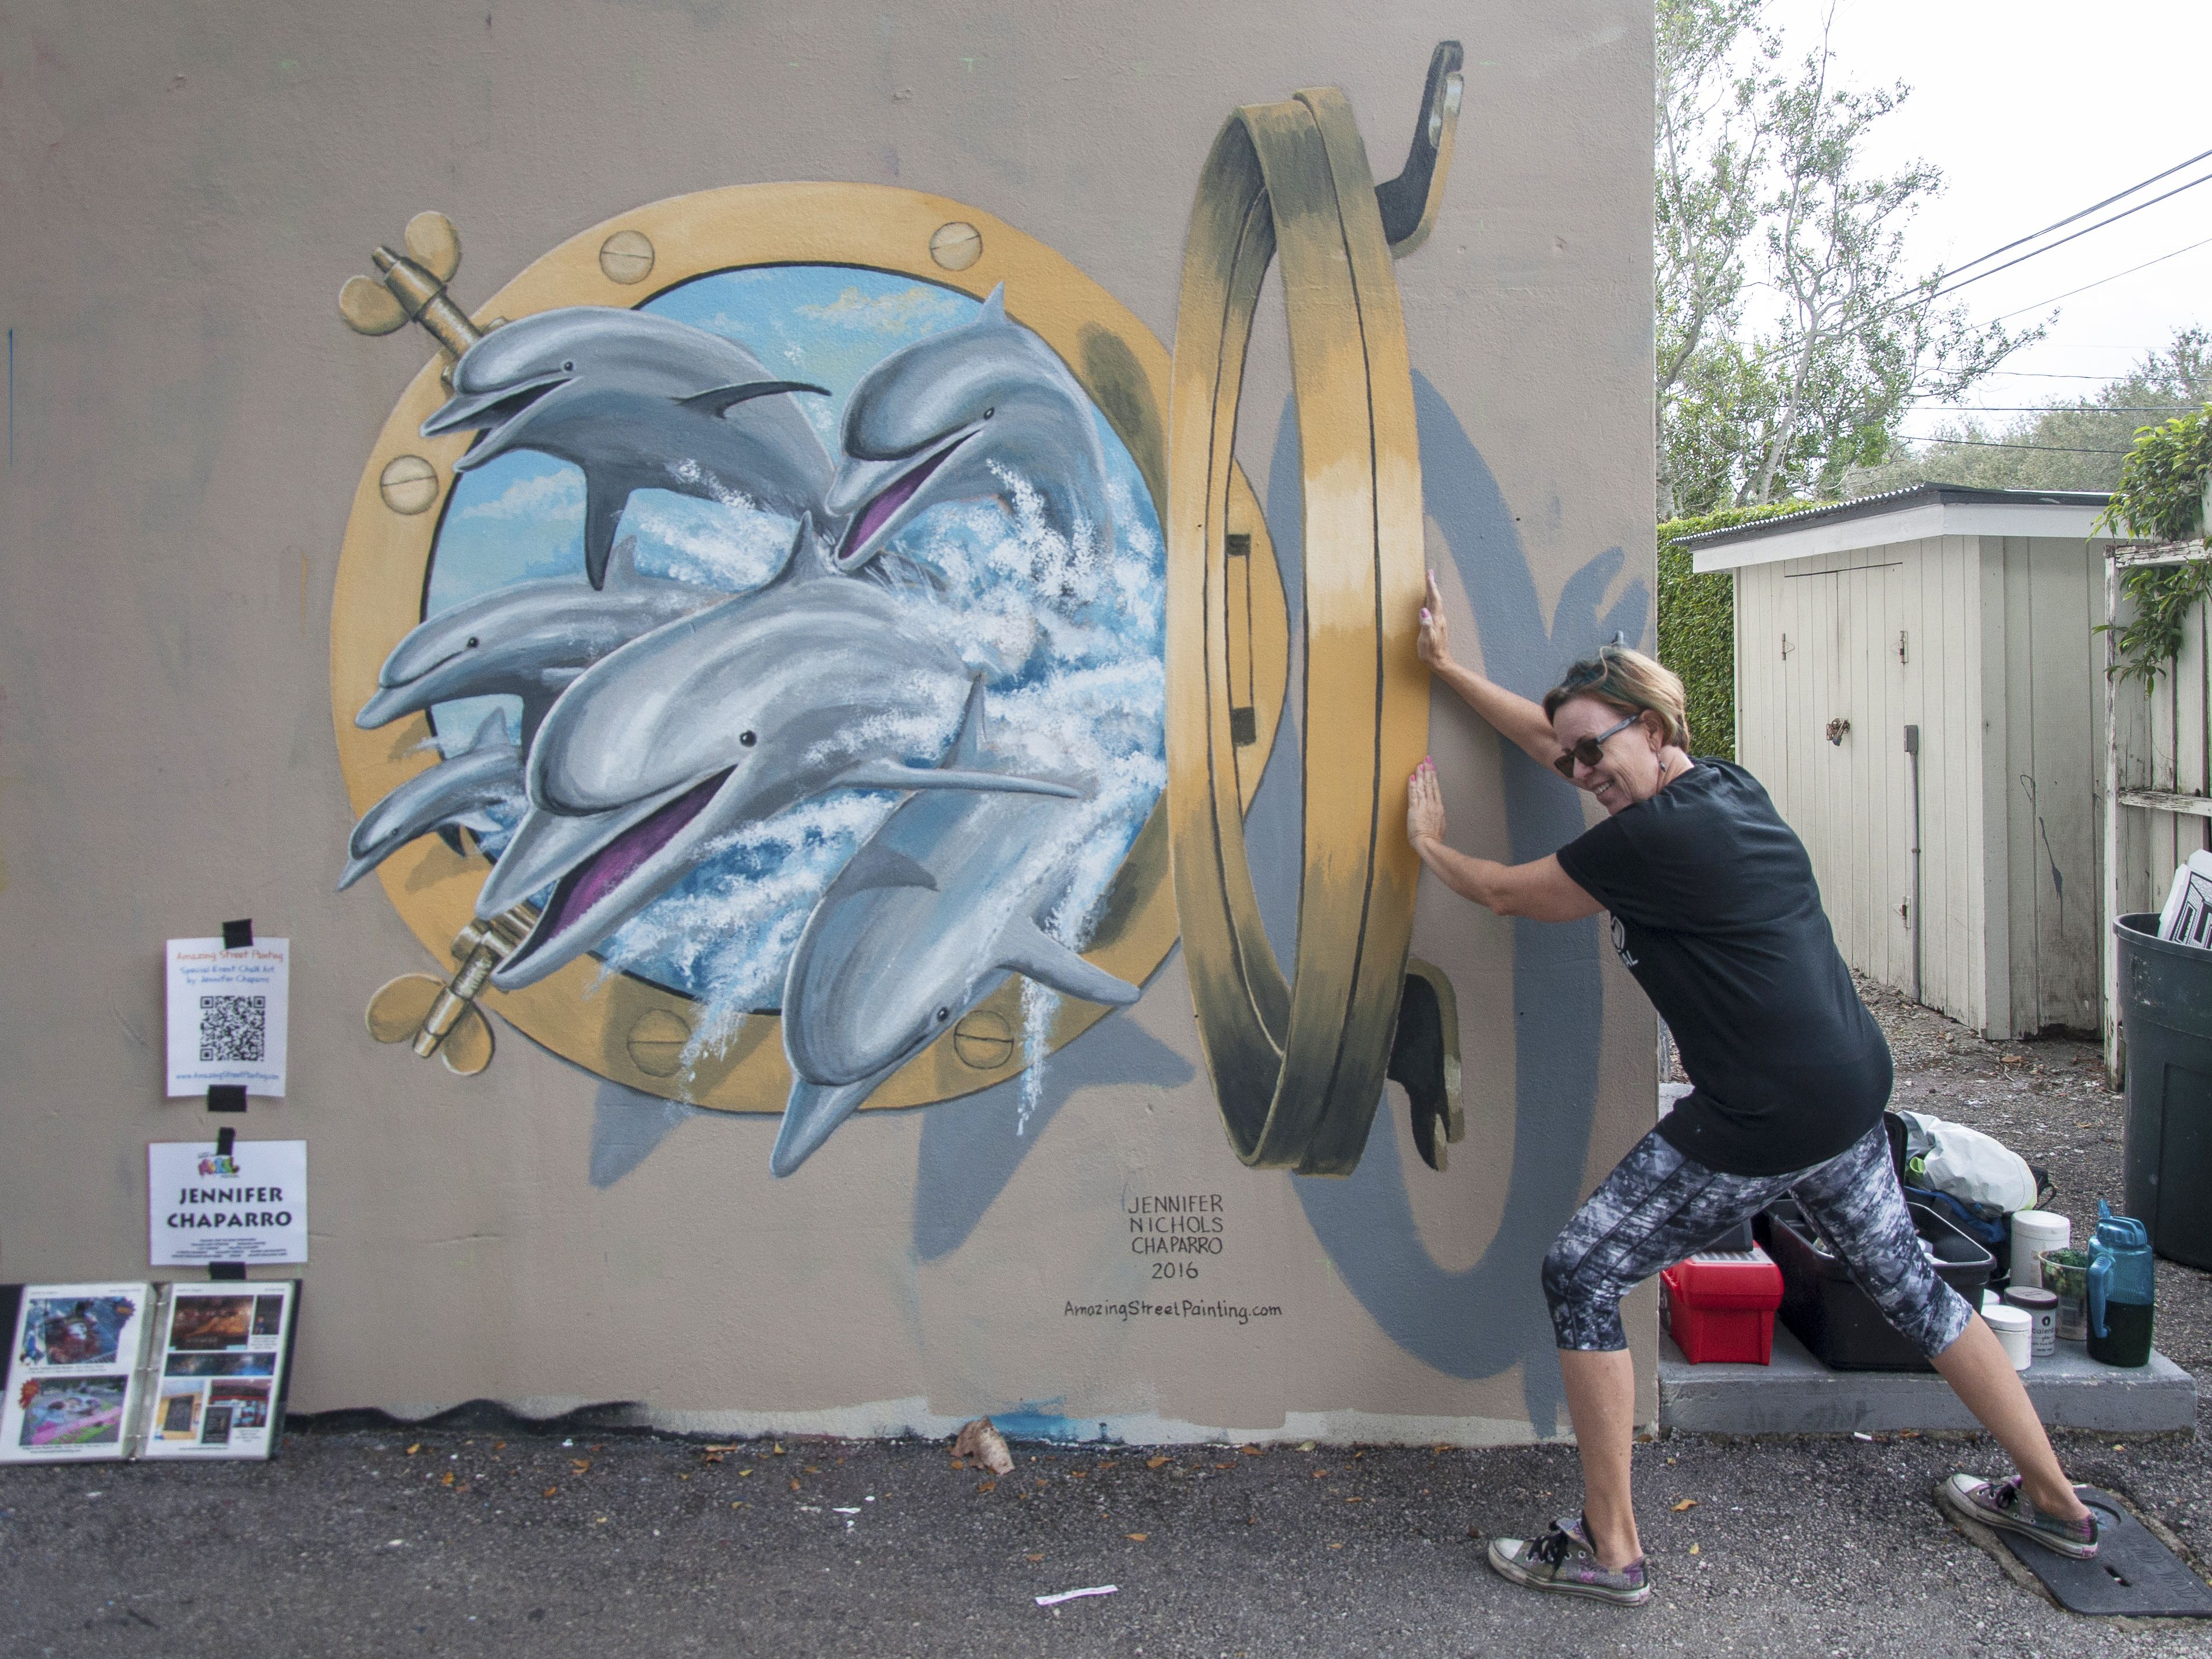 dolphin portal 3d mural done at back alley mural festival 2016 dolphin portal 3d mural done at back alley mural festival 2016 tequesta